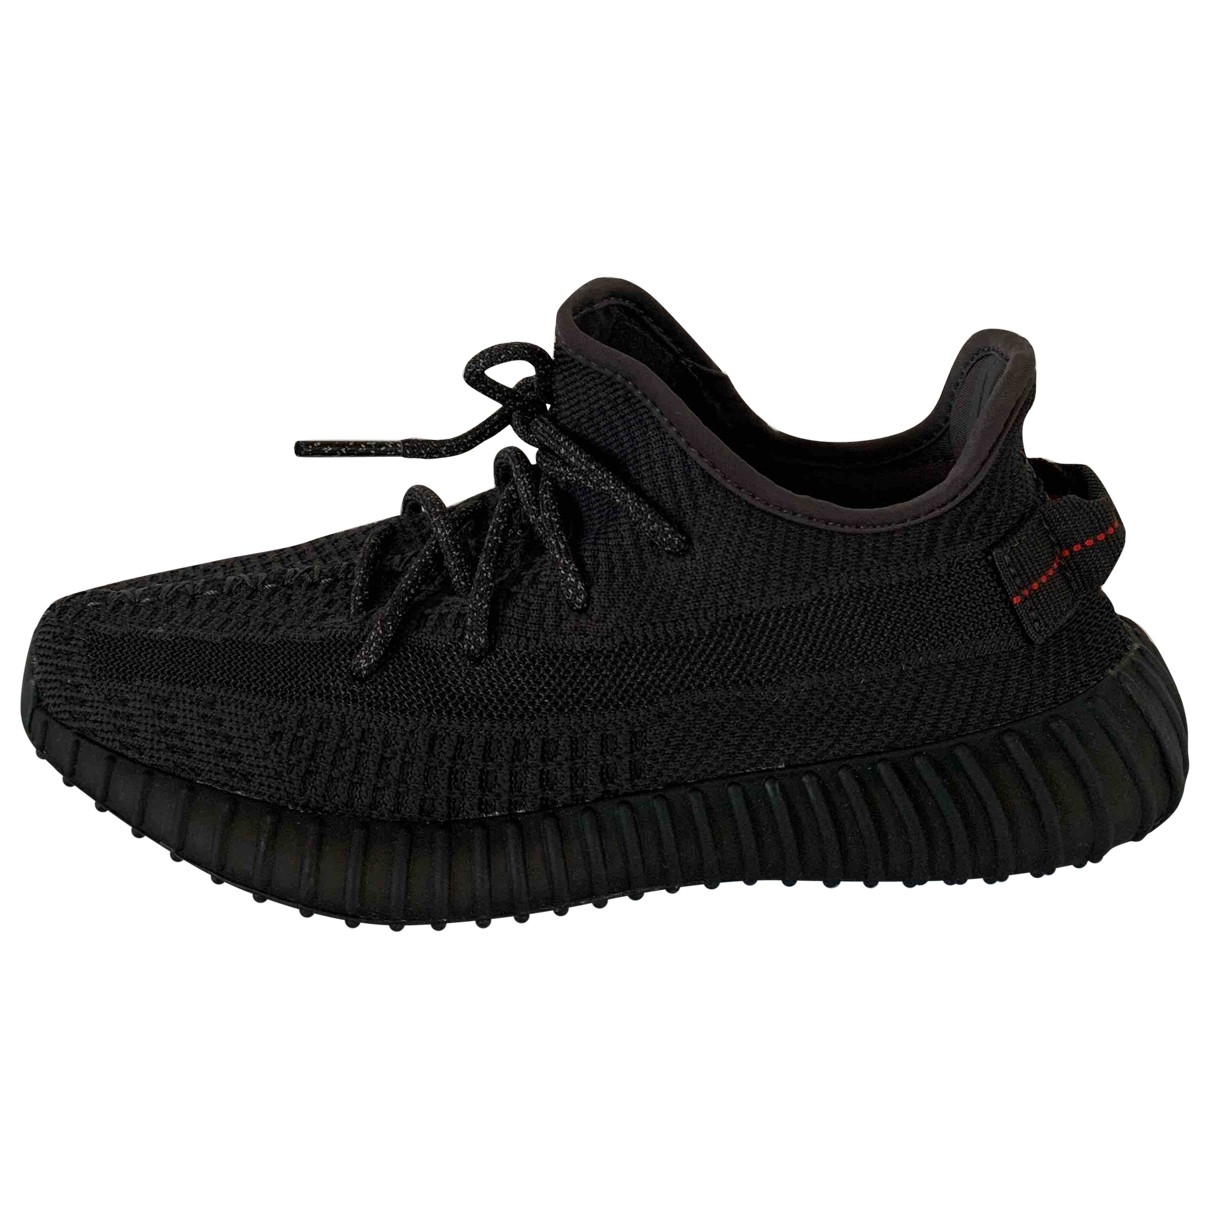 Yeezy X Adidas Boost 350 V2 Anthracite Trainers for Women 6.5 UK